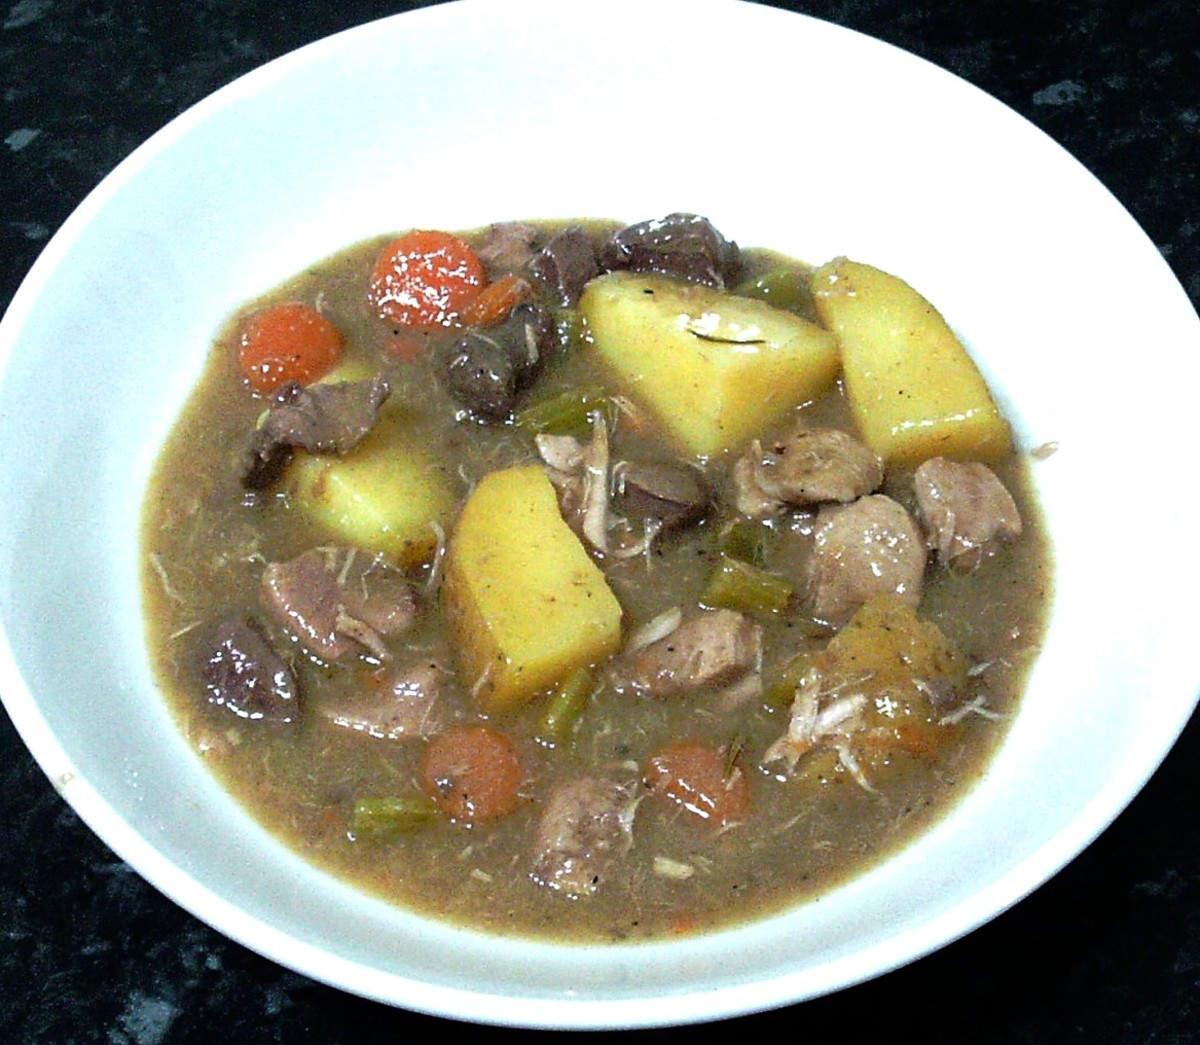 Pheasant, Pigeon and Woodcock Wild Game Stew Recipe